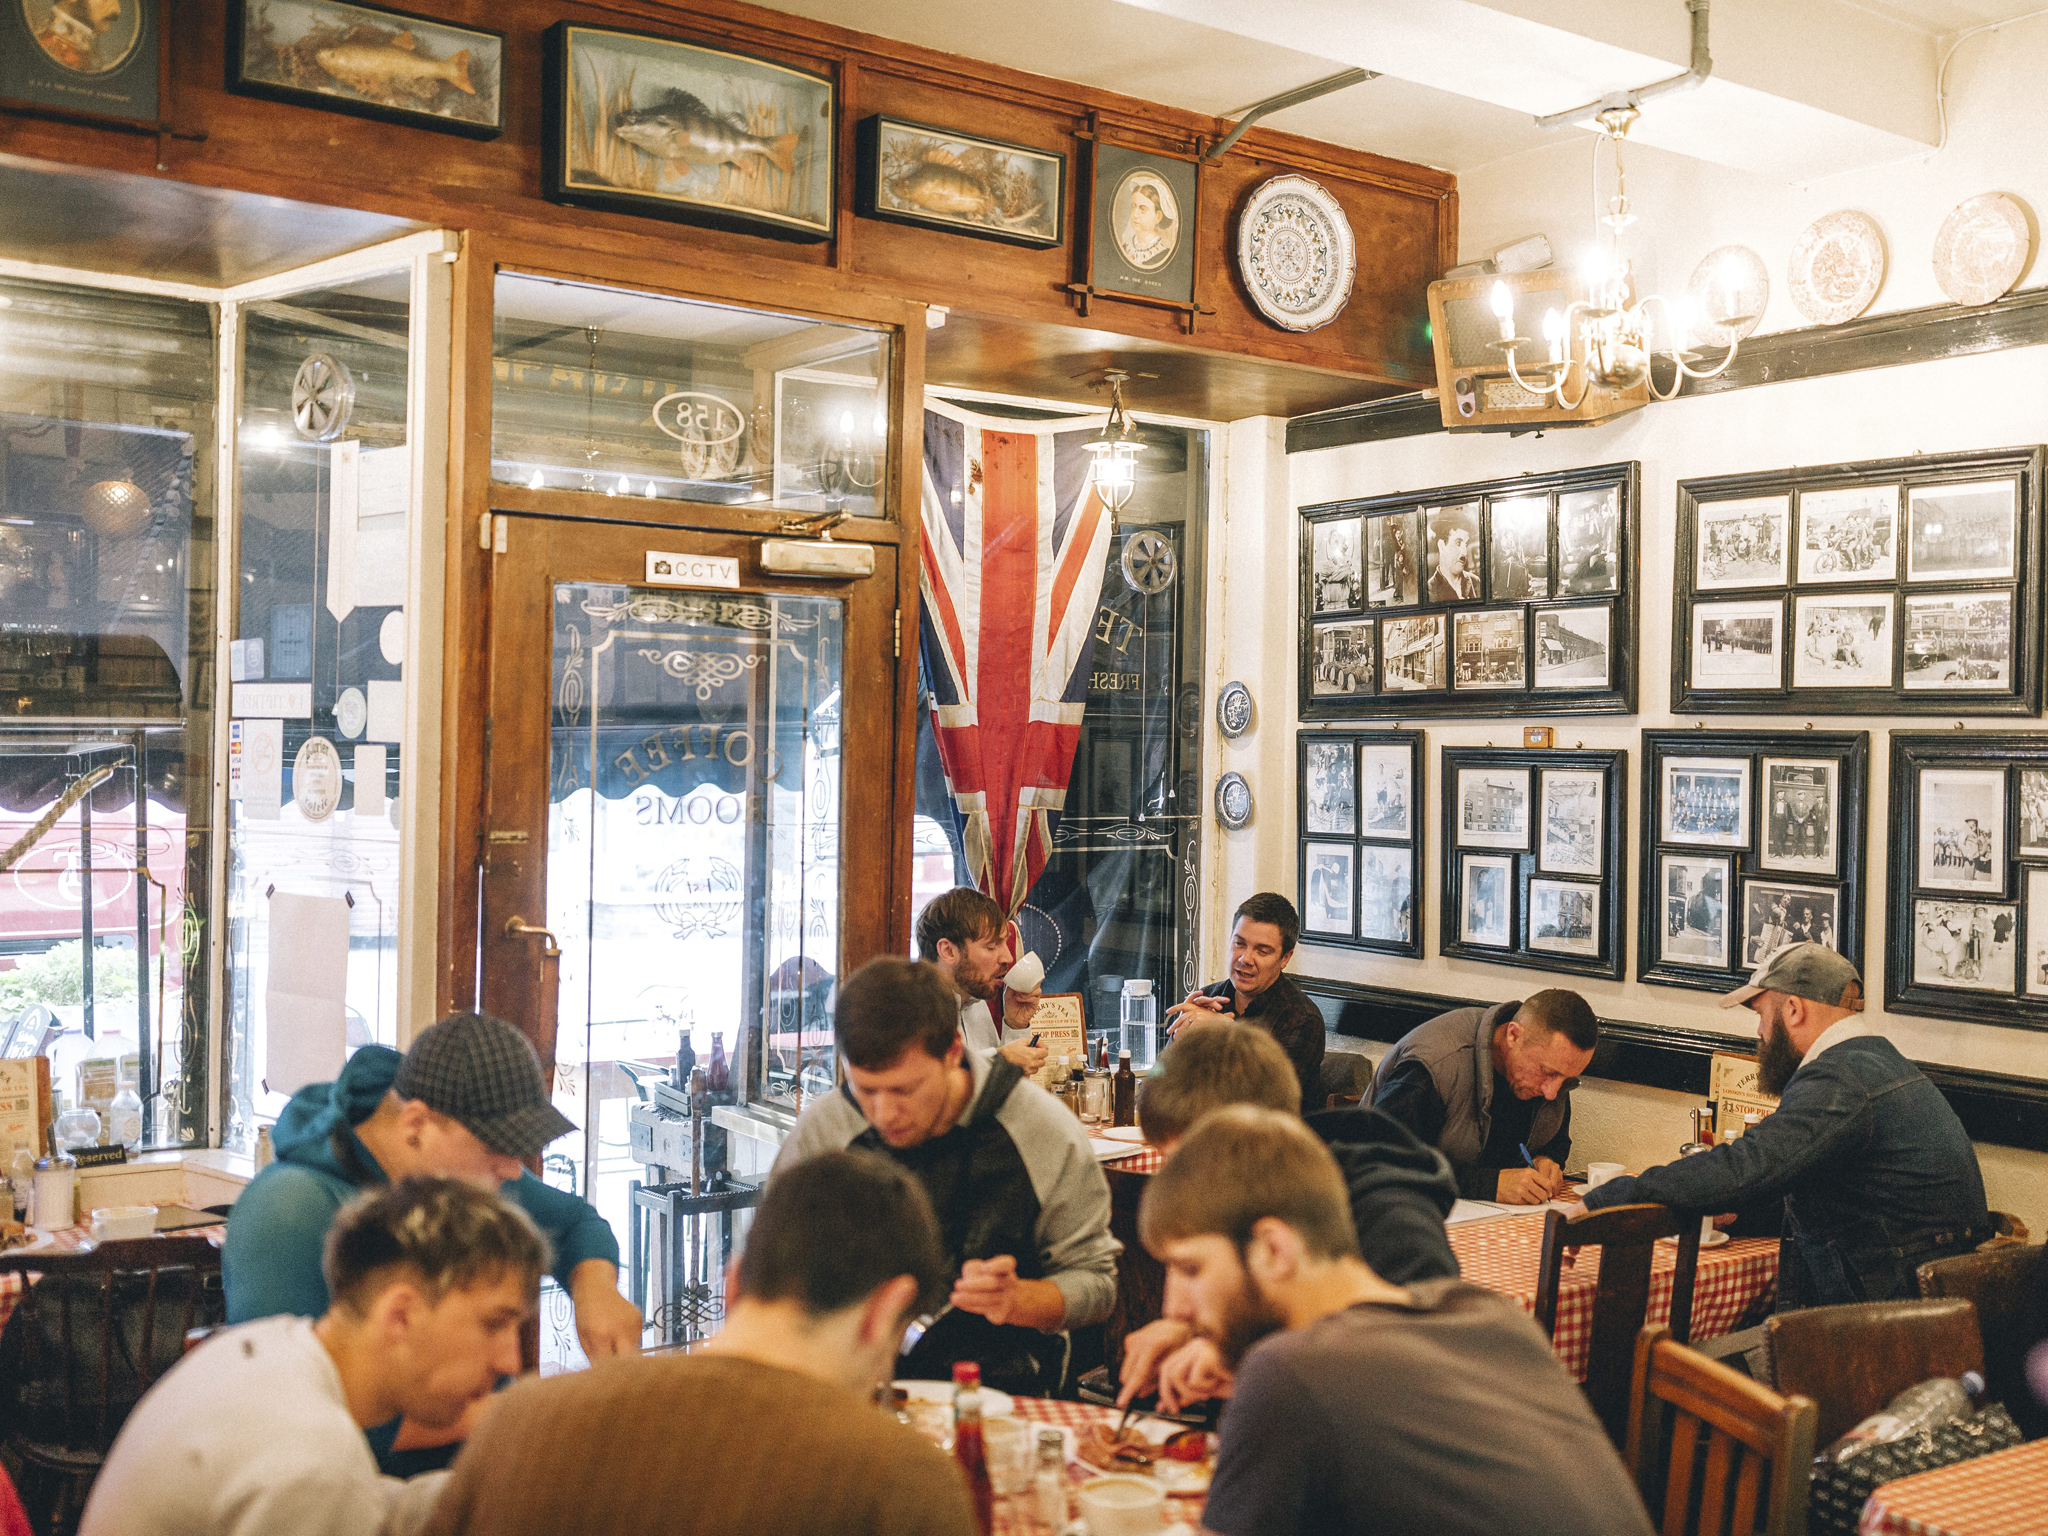 London's best greasy spoon cafes, Terry's Cafe